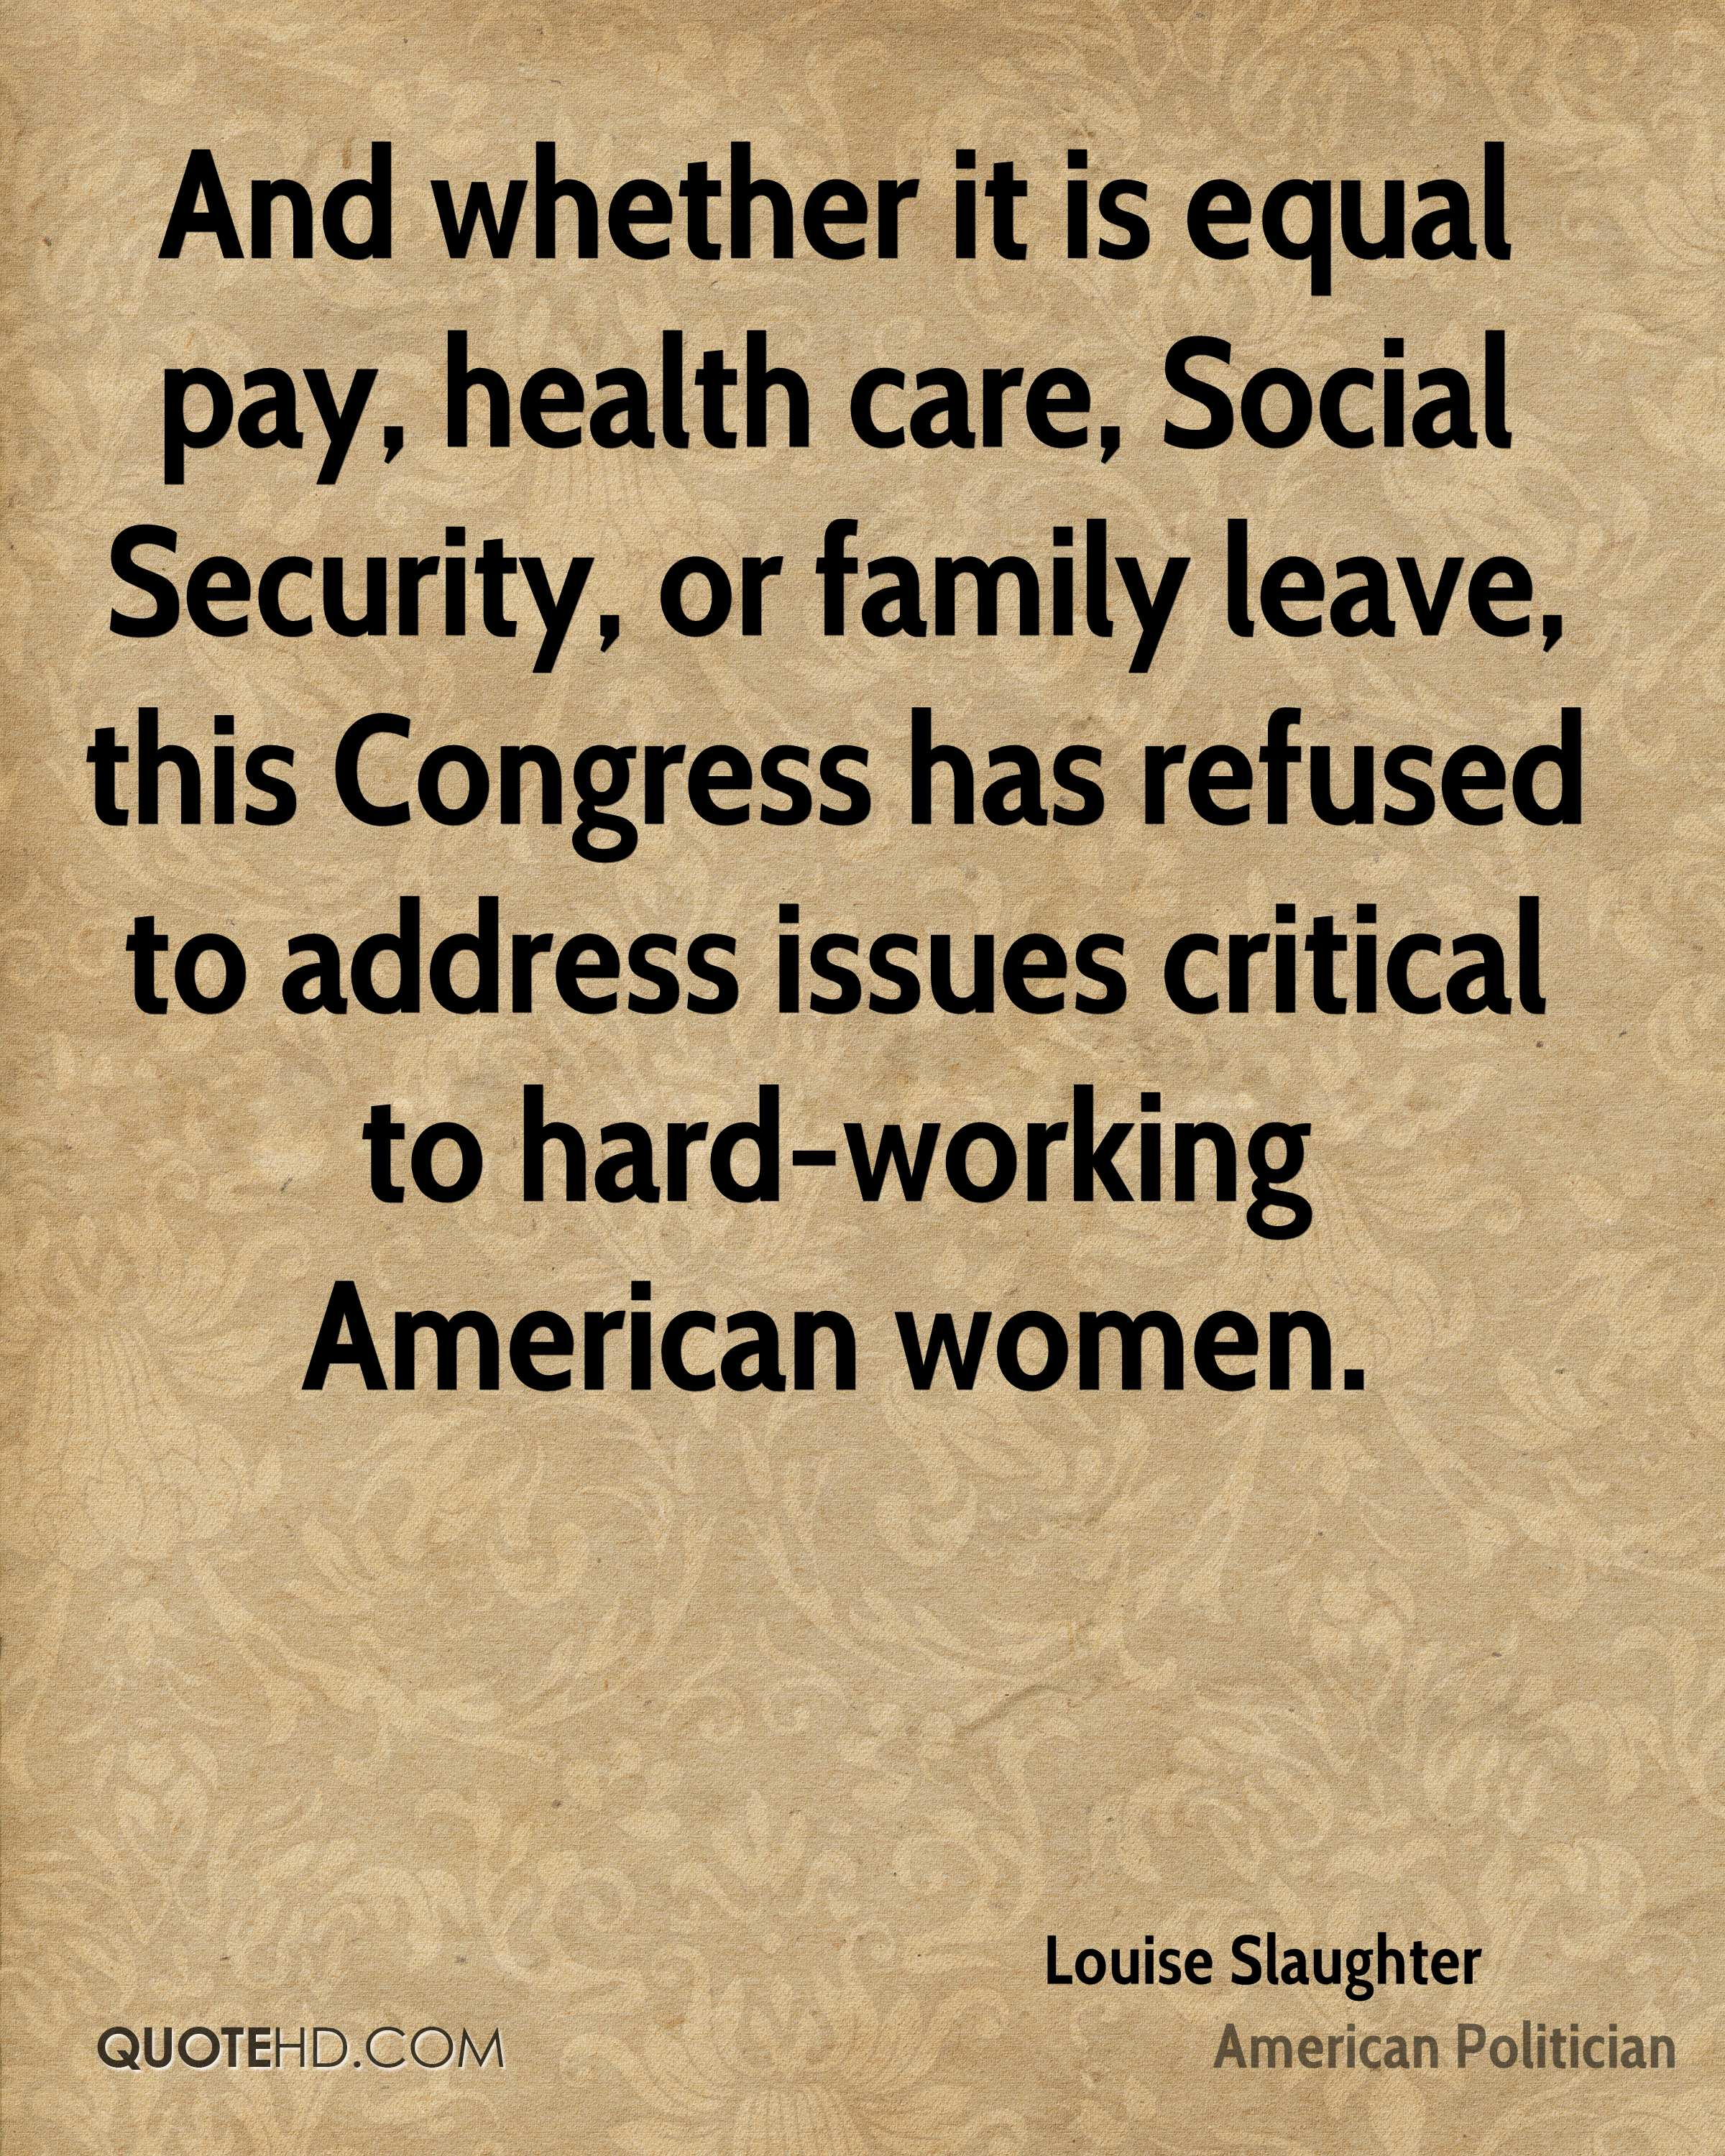 And whether it is equal pay, health care, Social Security, or family leave, this Congress has refused to address issues critical to hard-working American women.